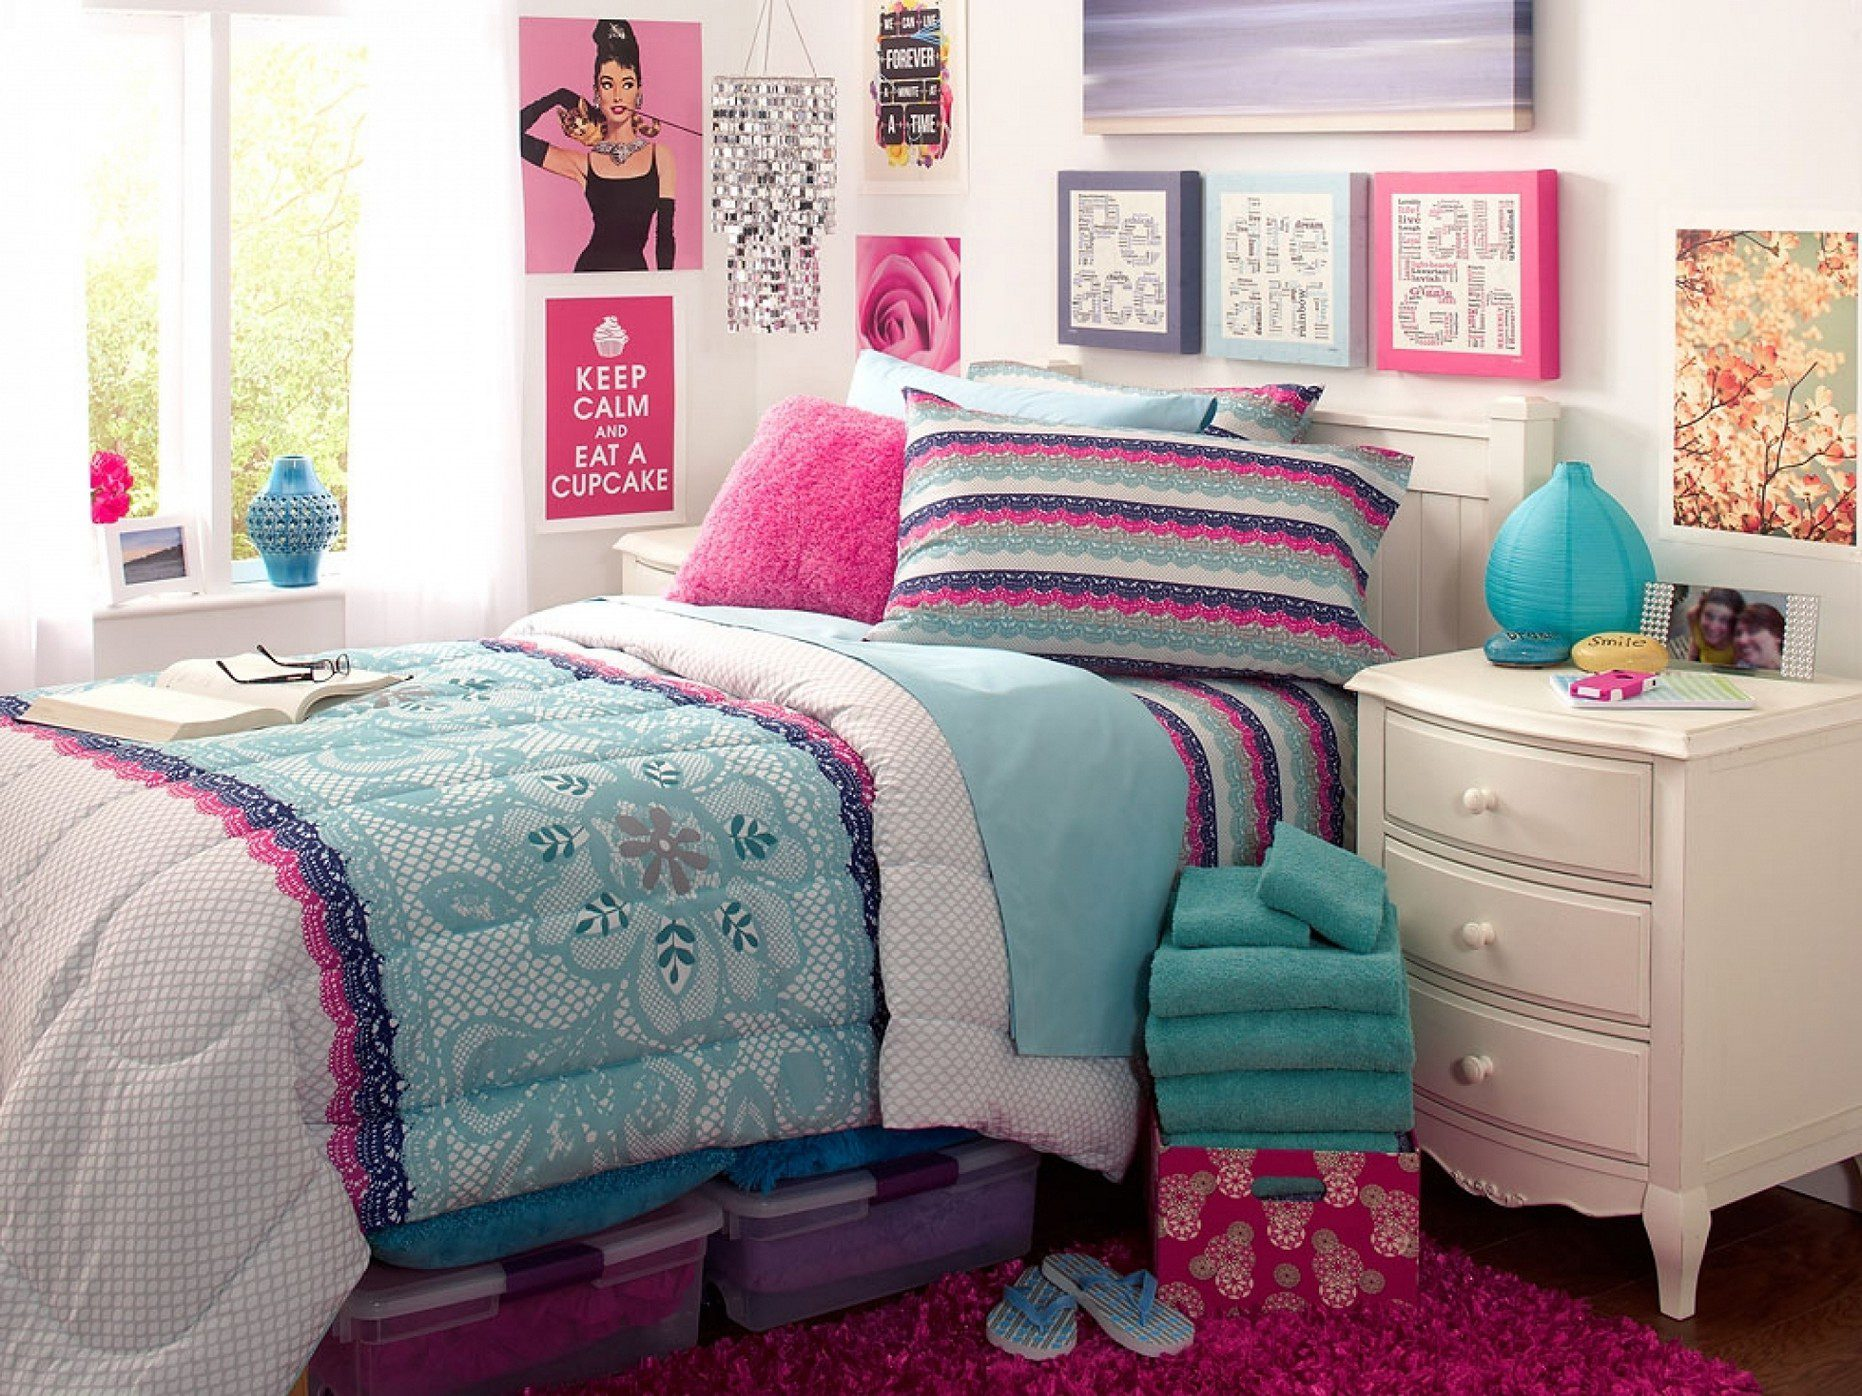 Decoration Ideas For Teenage Rooms | iCreatived